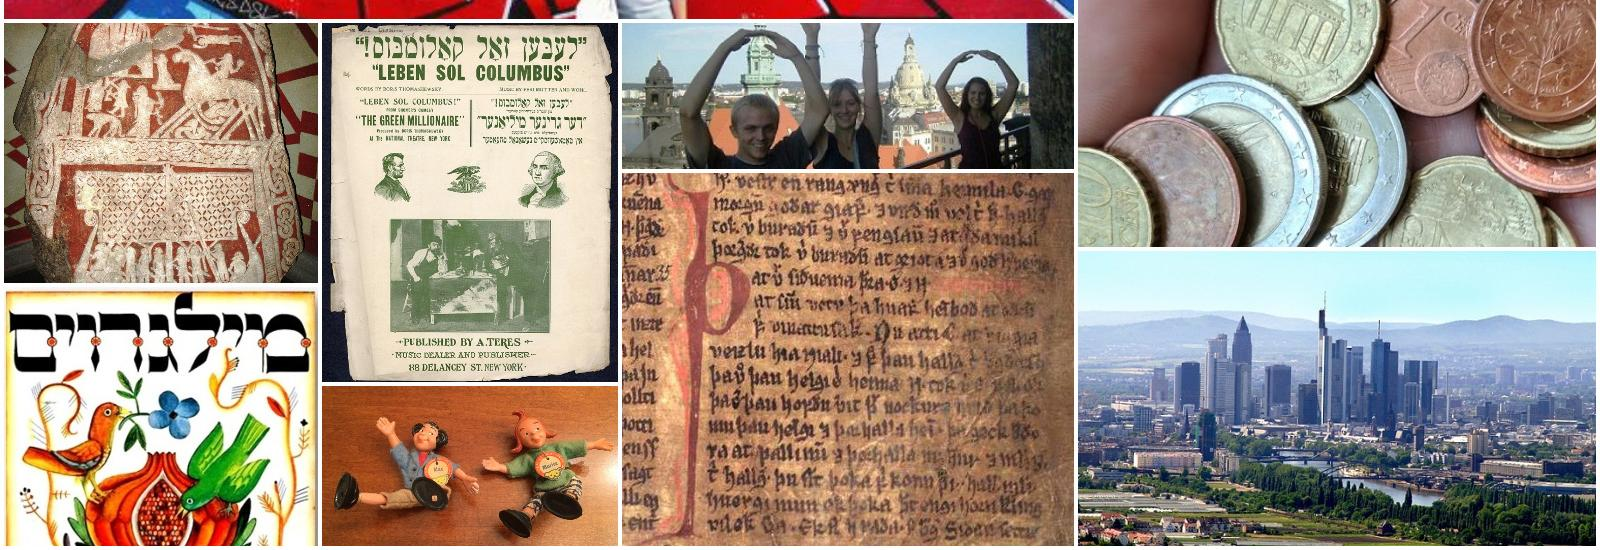 Collage of activities and artifacts